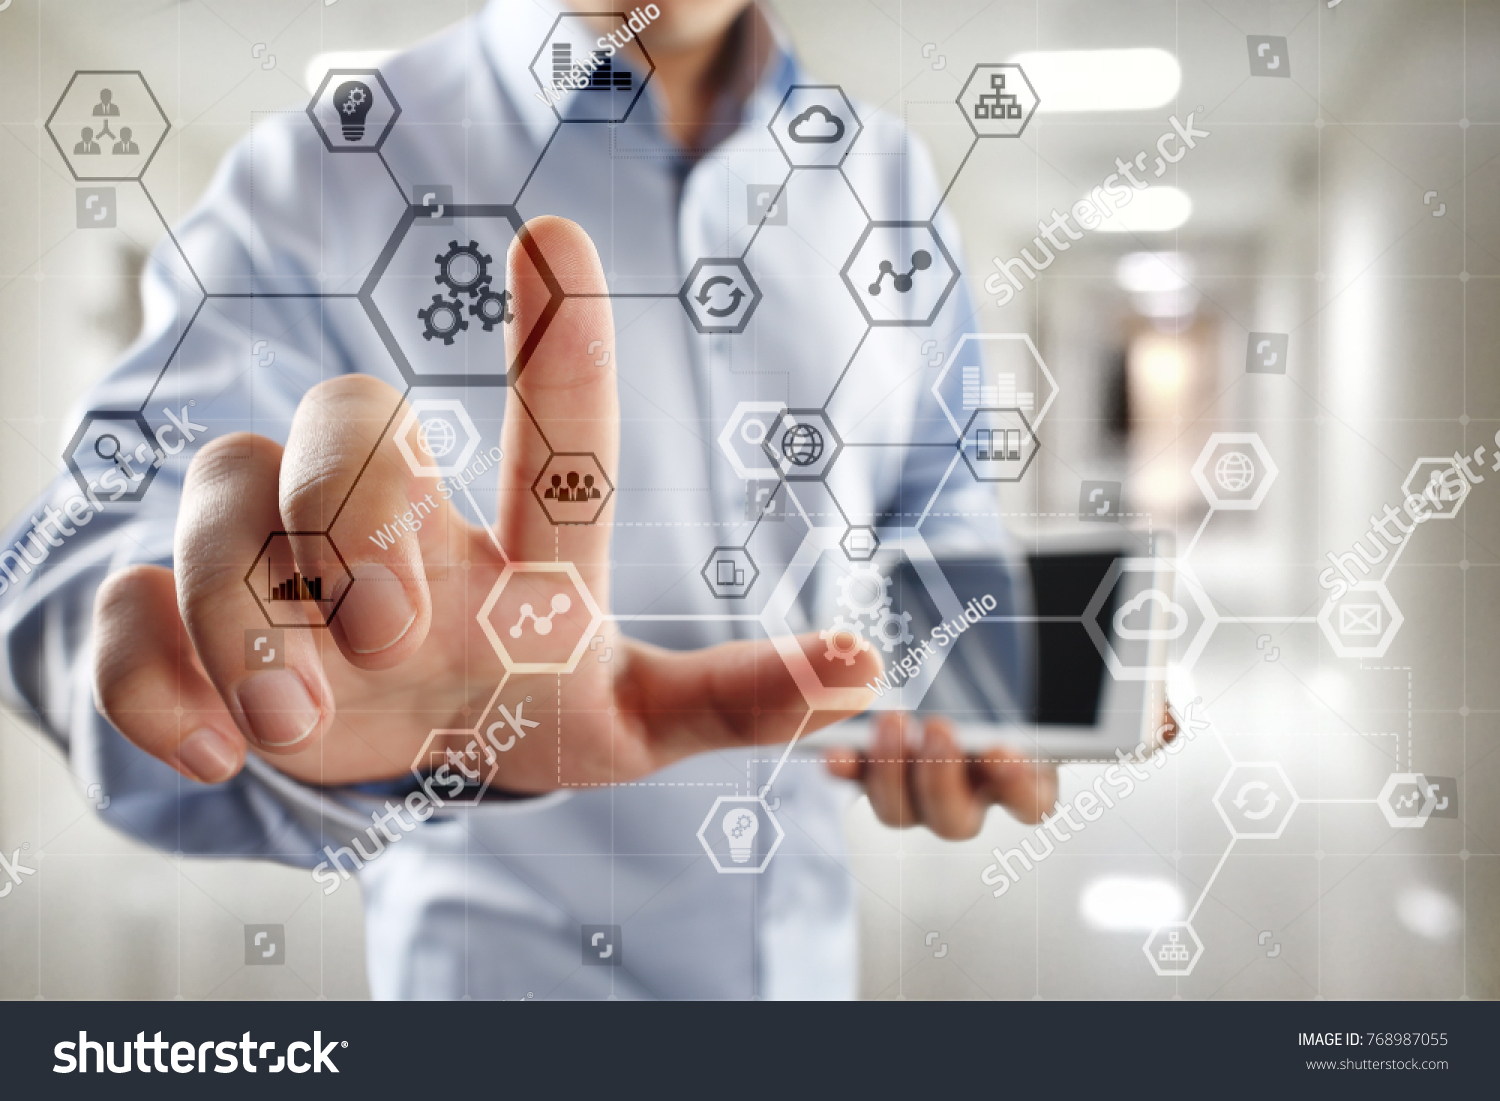 Block Chain Network And Programming Concept On Virtual Screen Remote Stethoscope Diagram Background Business Technology Ez Canvas